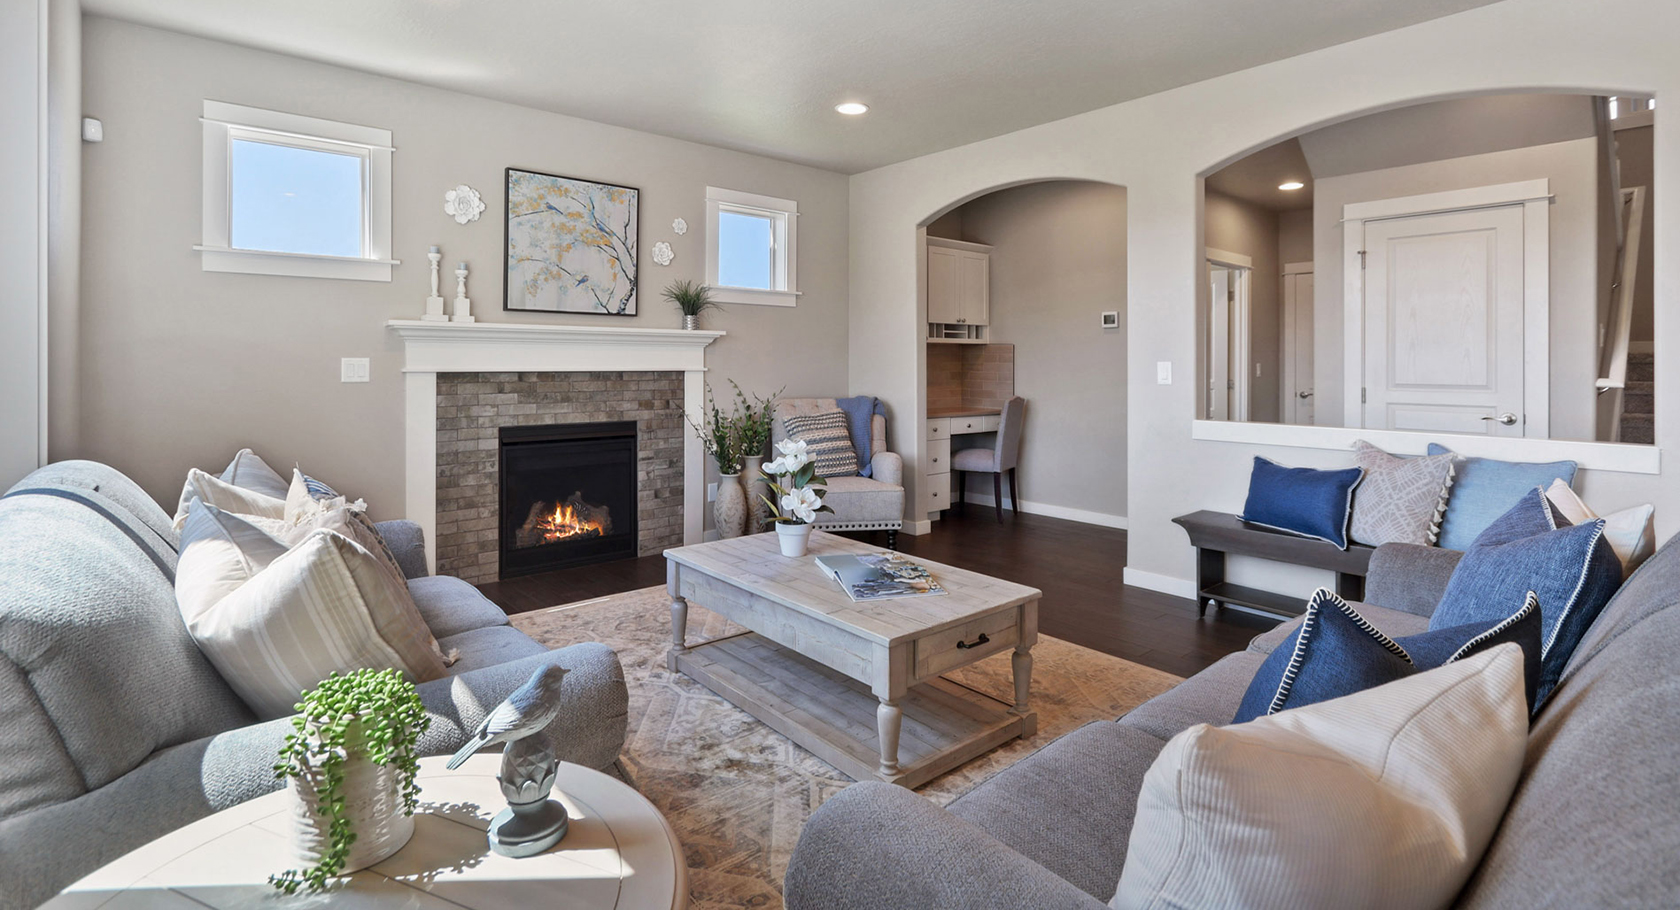 Stoneridge-Encore-FM_1680x910 | Home Builders in Oregon ... on curtis home design, imsi home design, romantic home design, hgtv home design, renaissance home design, michael graves home design, wolf home design,